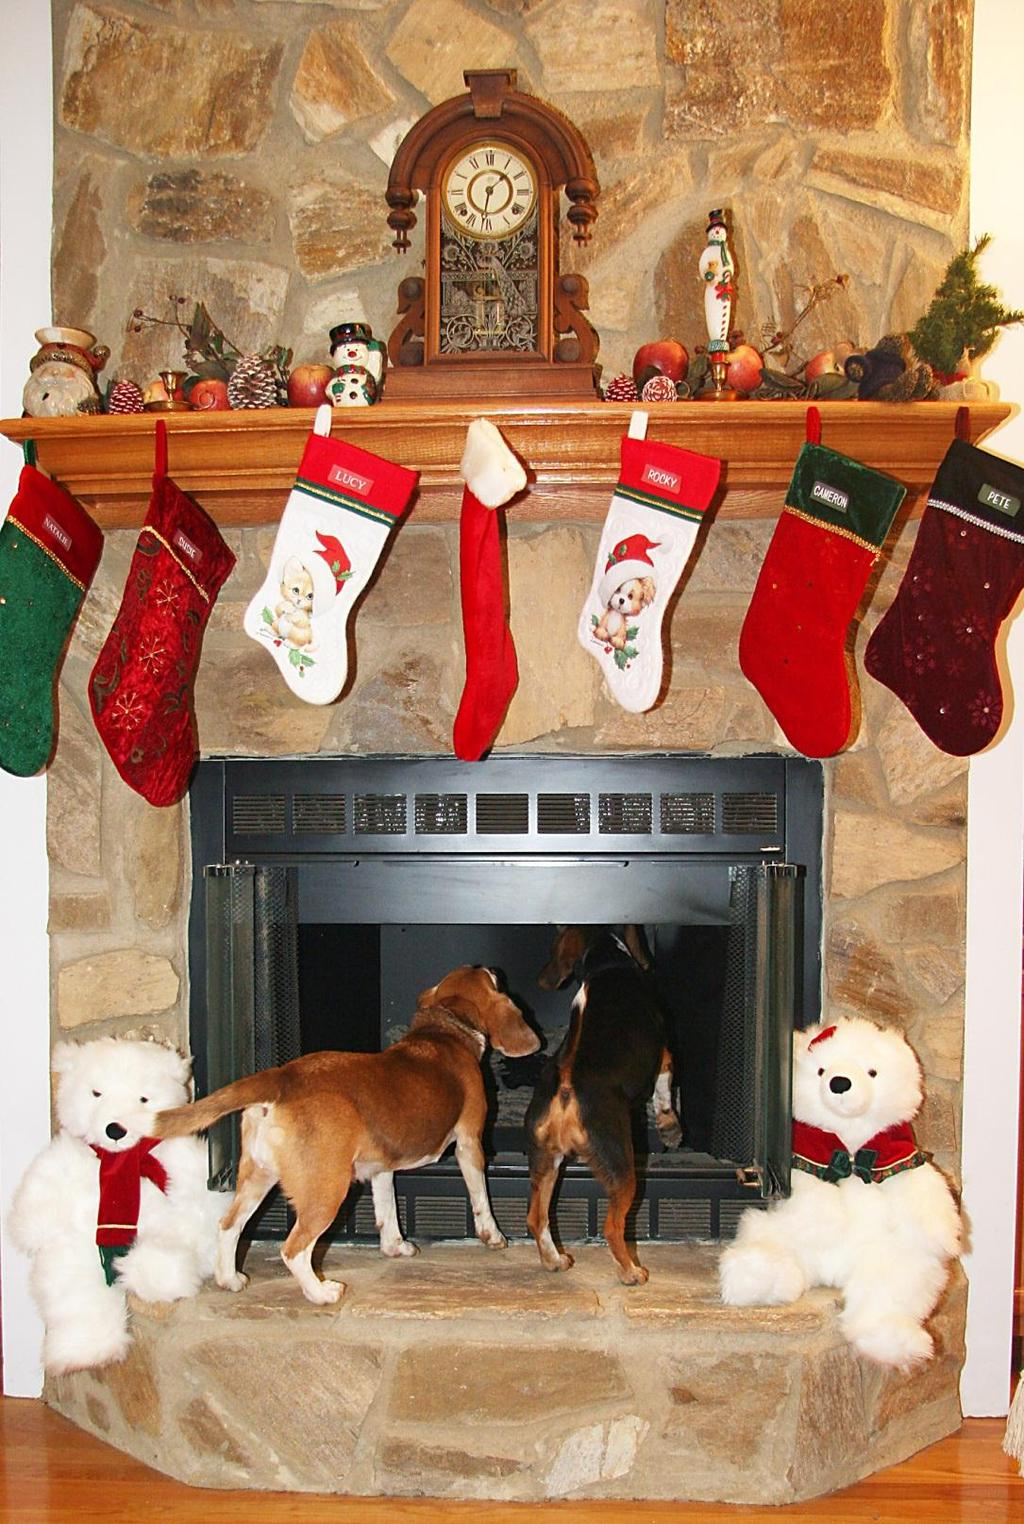 PAUSE FOR PAWS Winter 2013 Volume 6 Issue 1 A lot of dogs have bigger problems than just waiting for Santa to come.